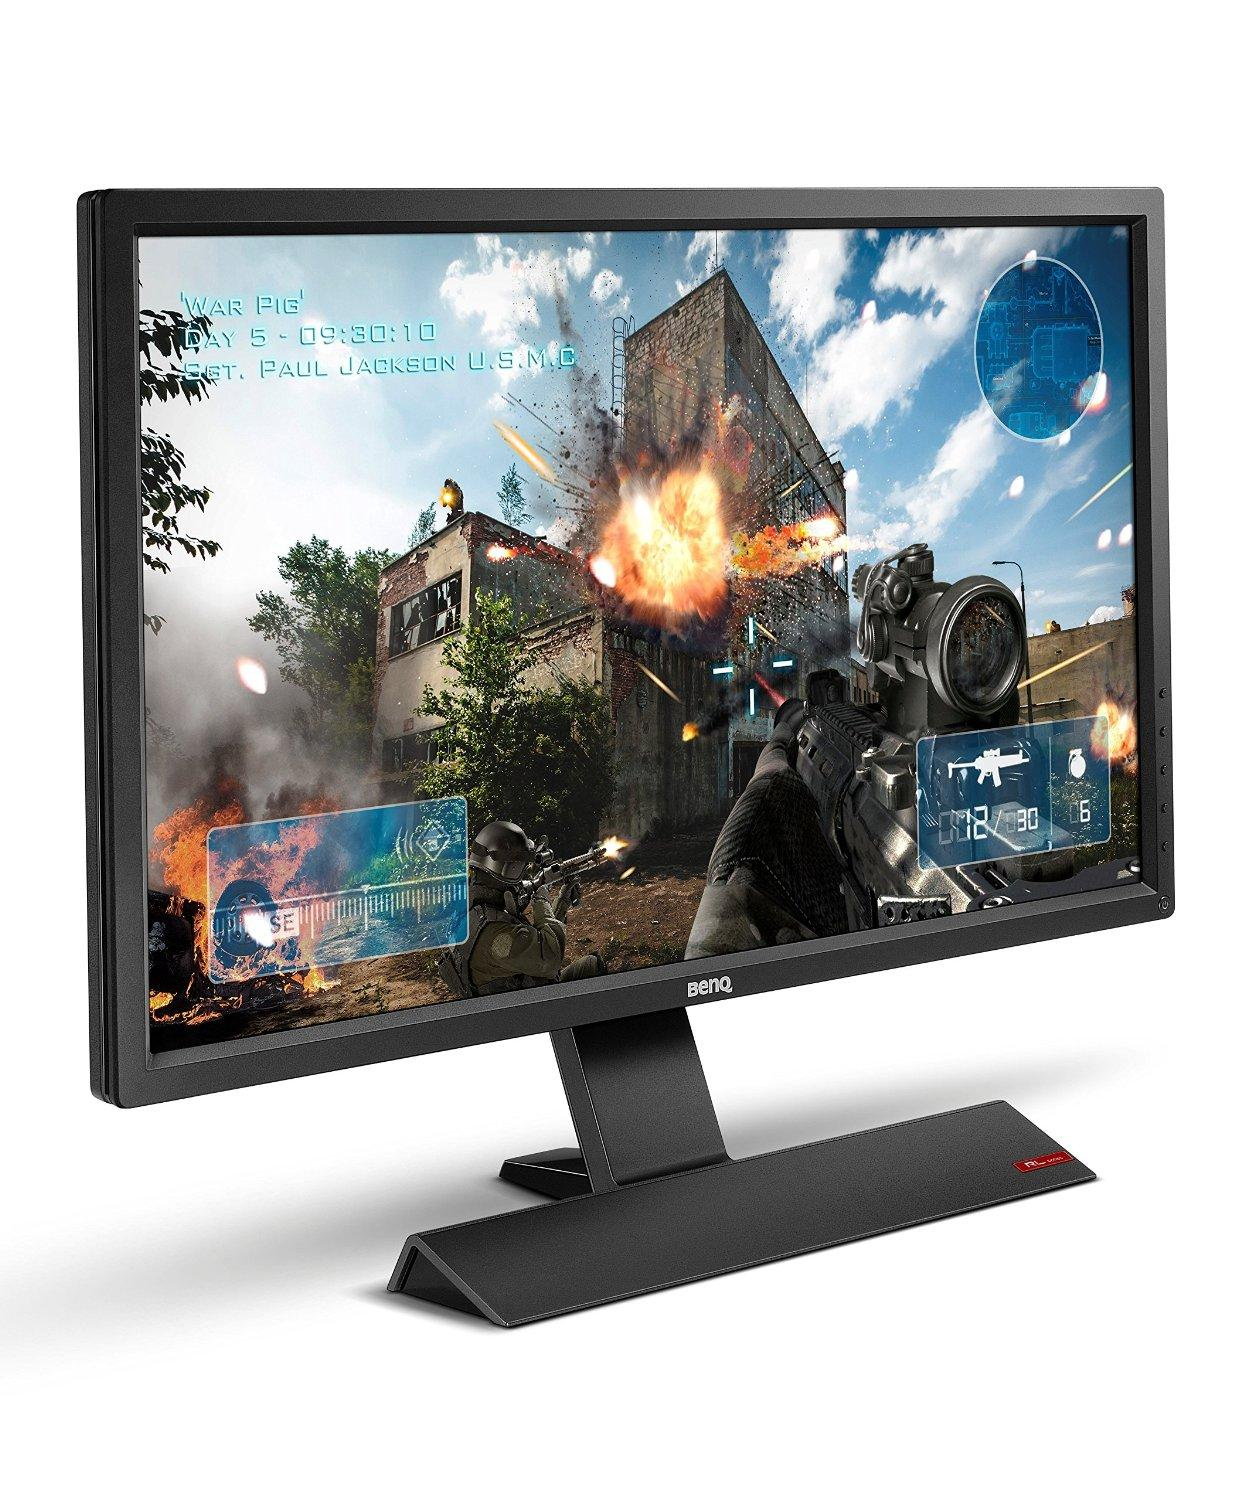 BenQ RL2755HM 27-inch 1ms GTG HDMIx2 Official MLG UMG Gaming Monitor